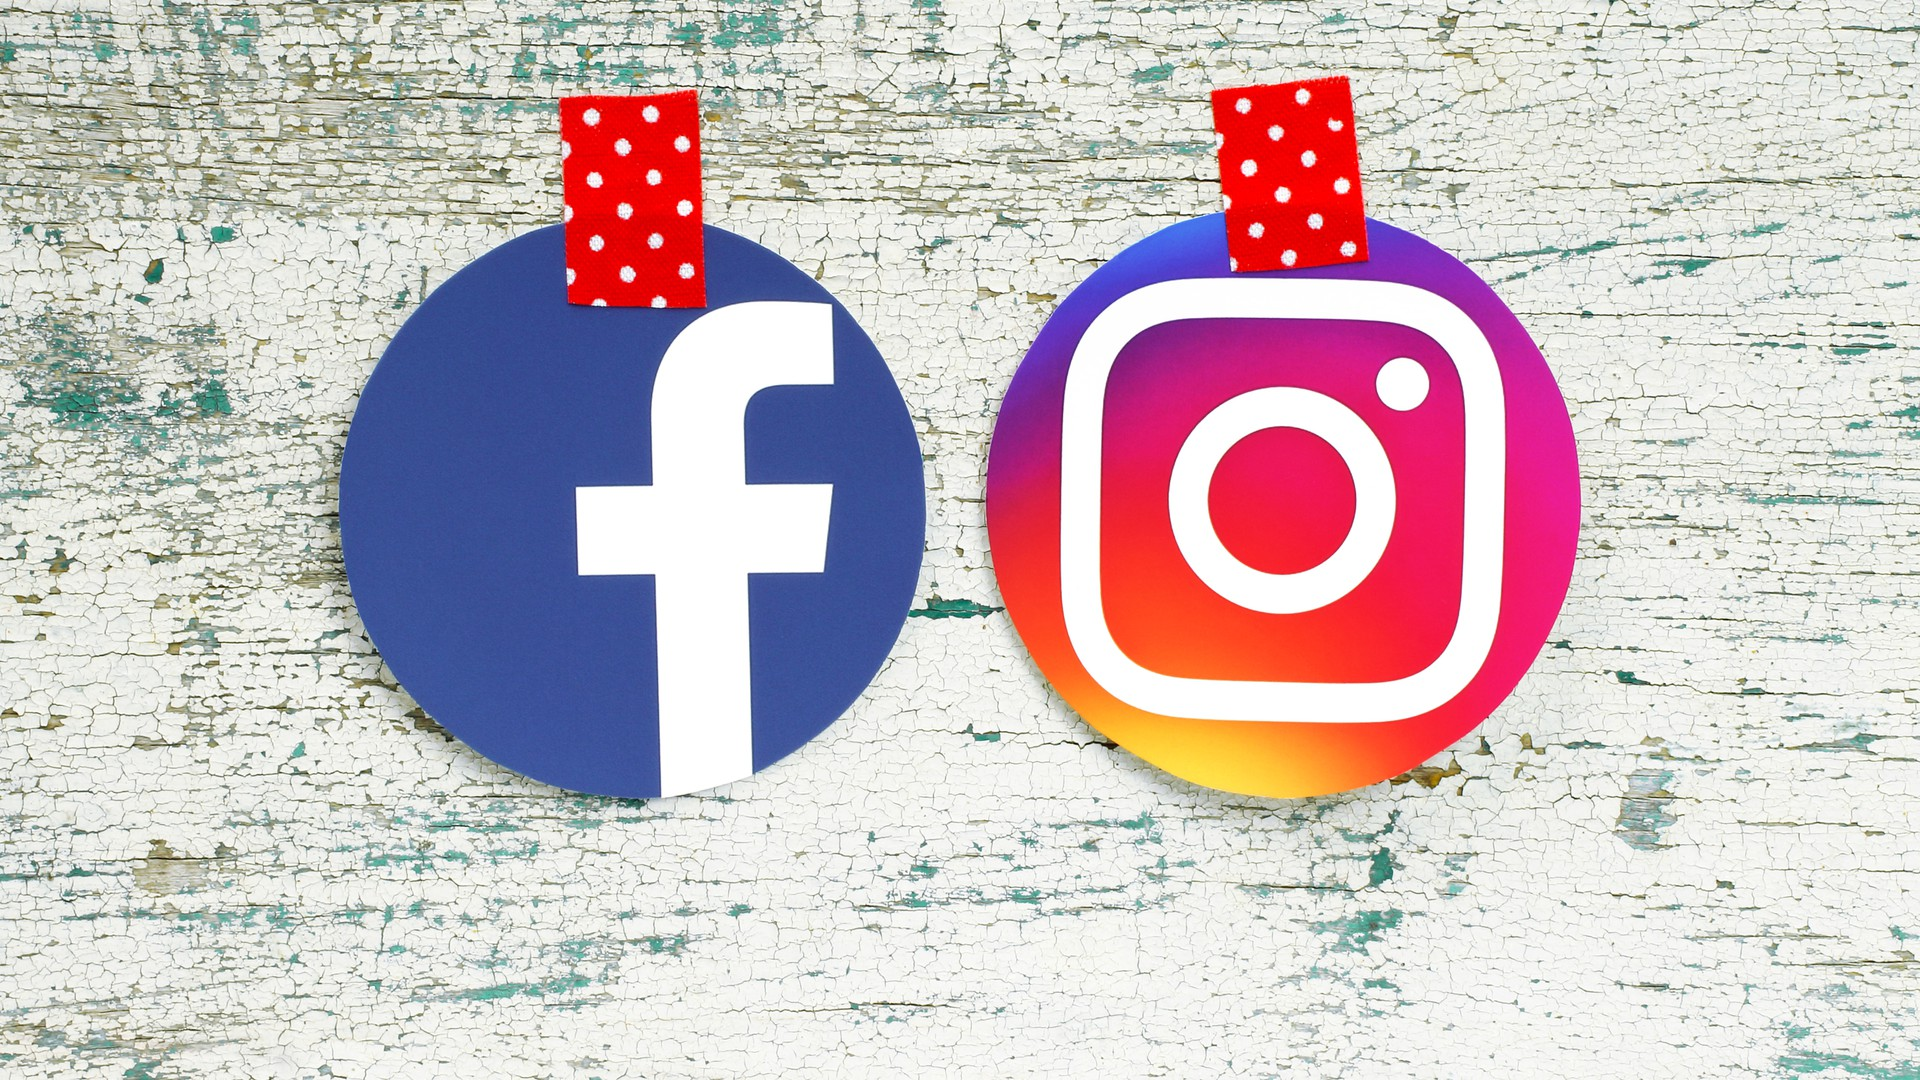 Social-Media-Icons-Facebook_Instagram.jpg